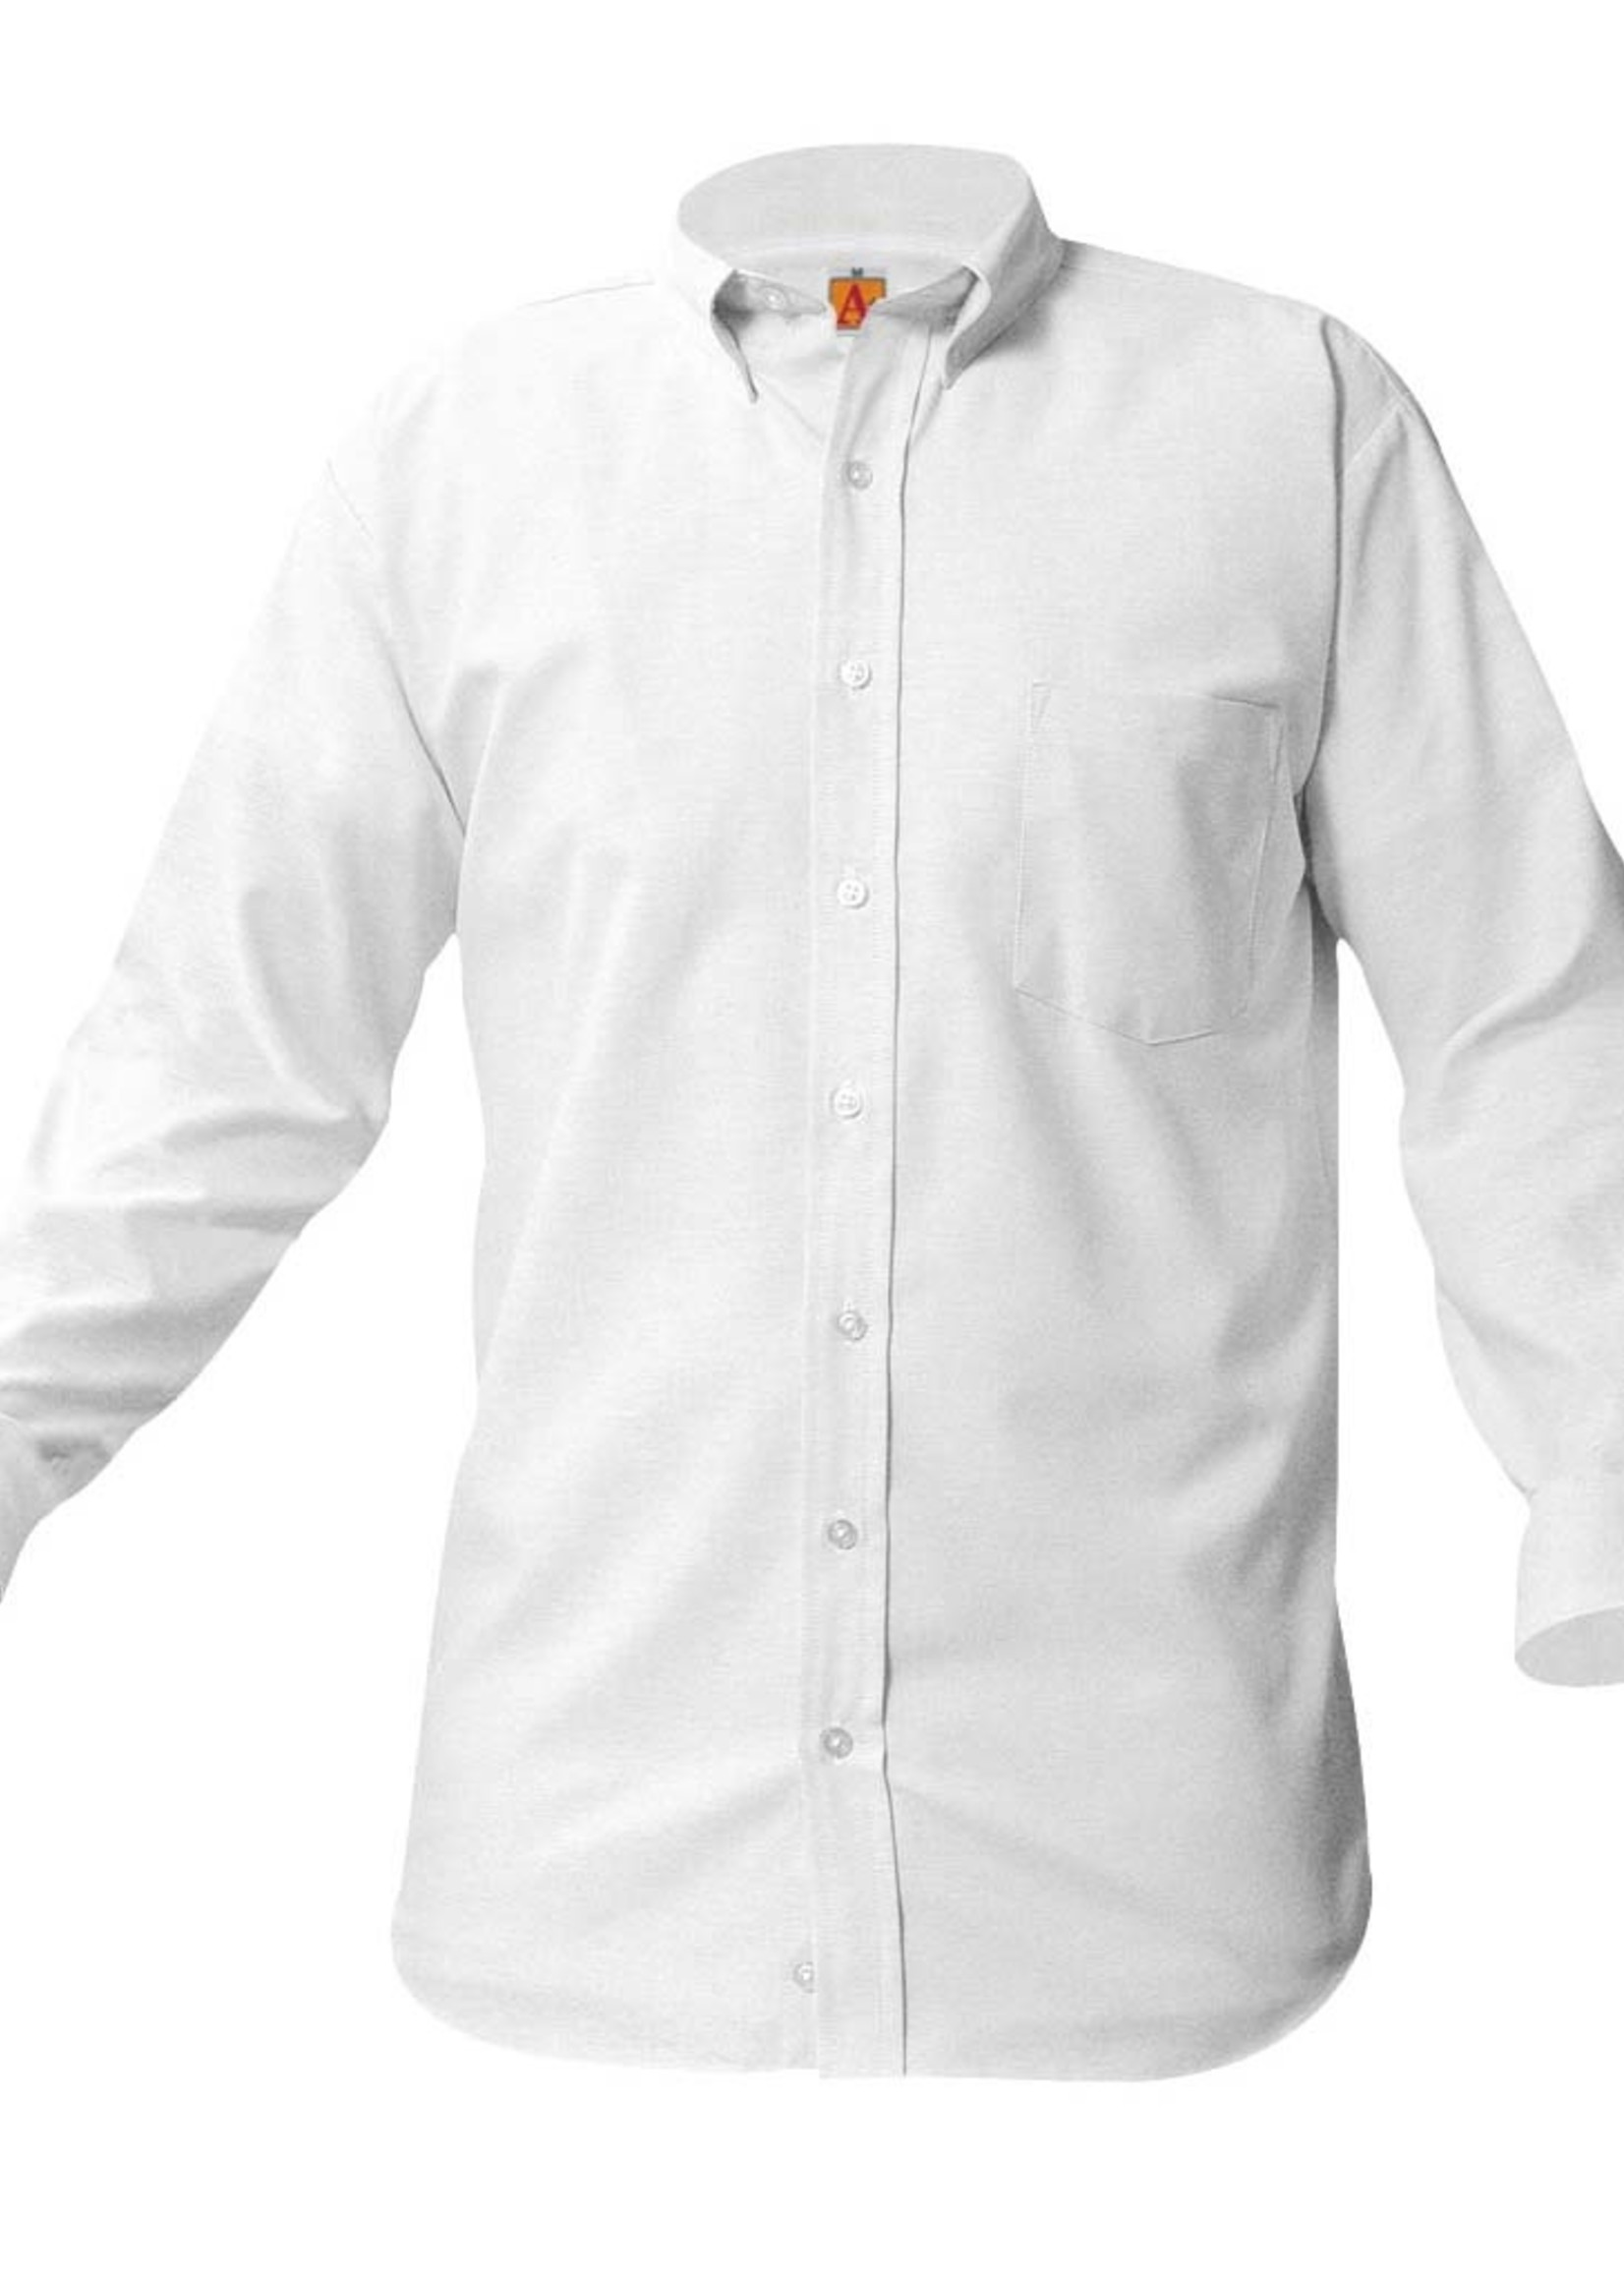 Null Long Sleeve White Oxford Shirt LO